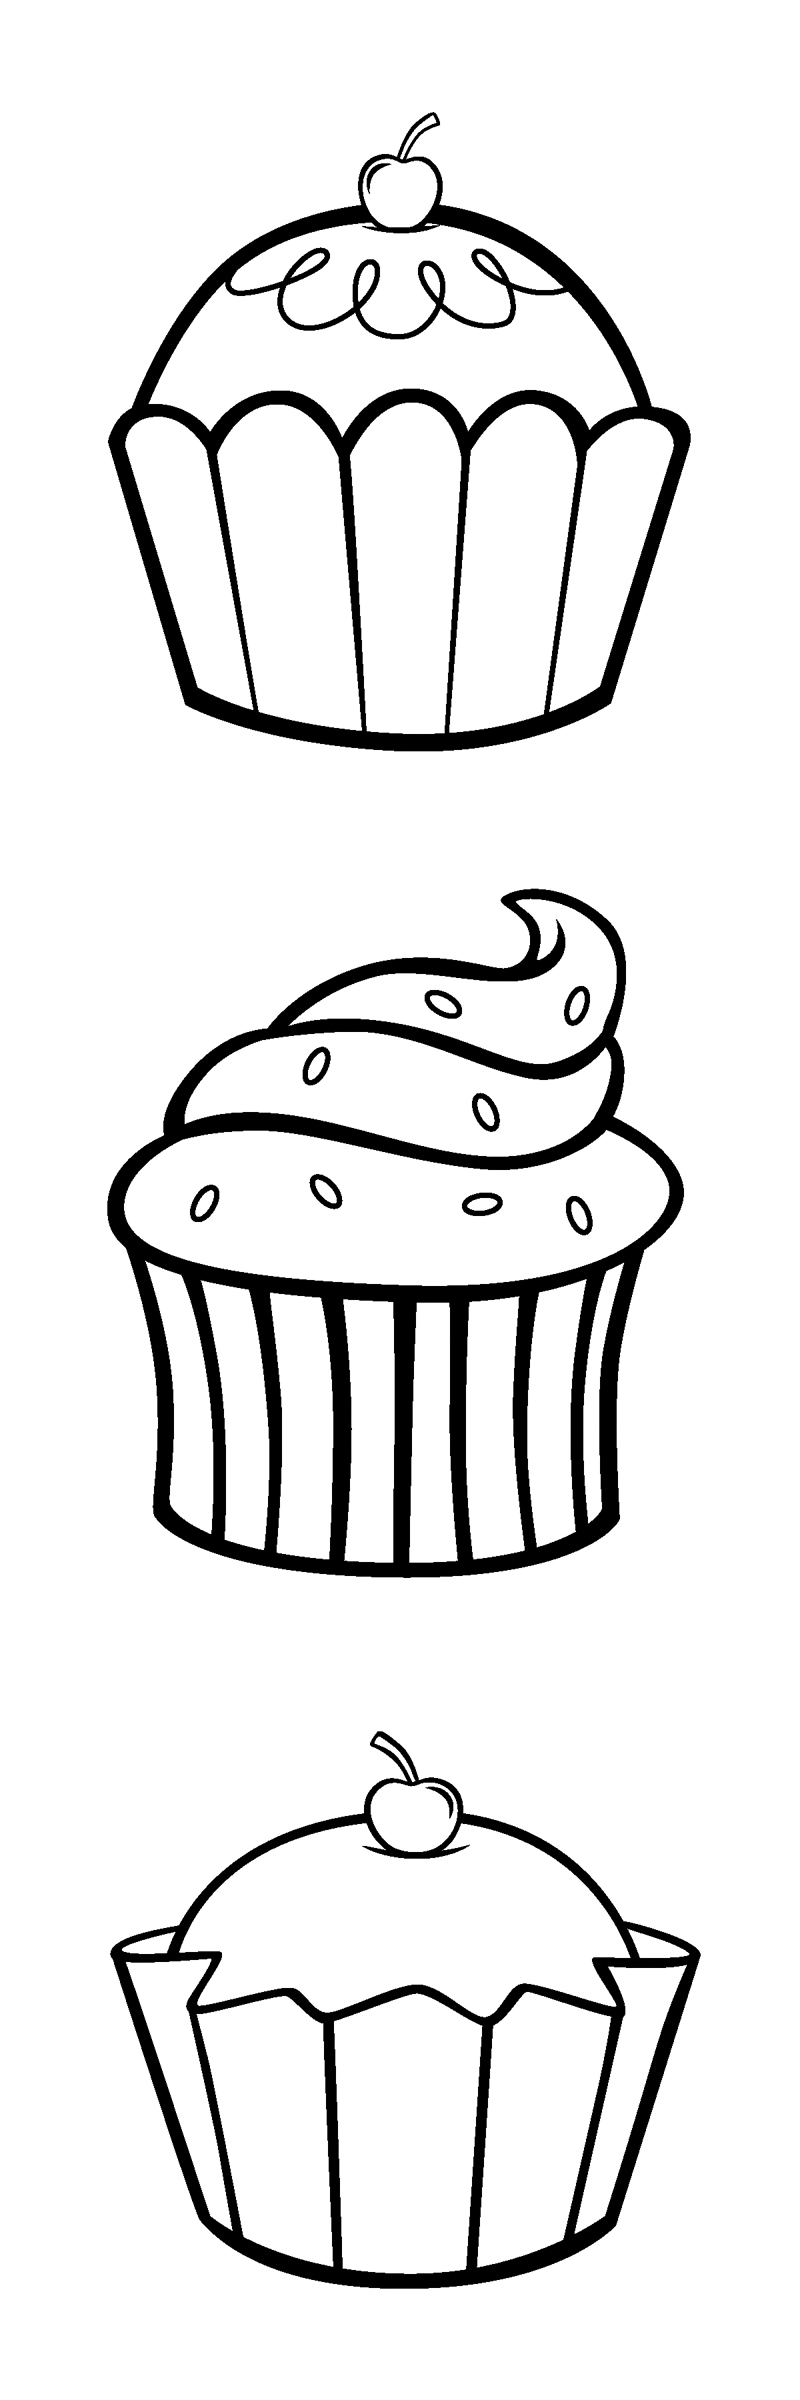 If you can print. Baked goods clipart drawing